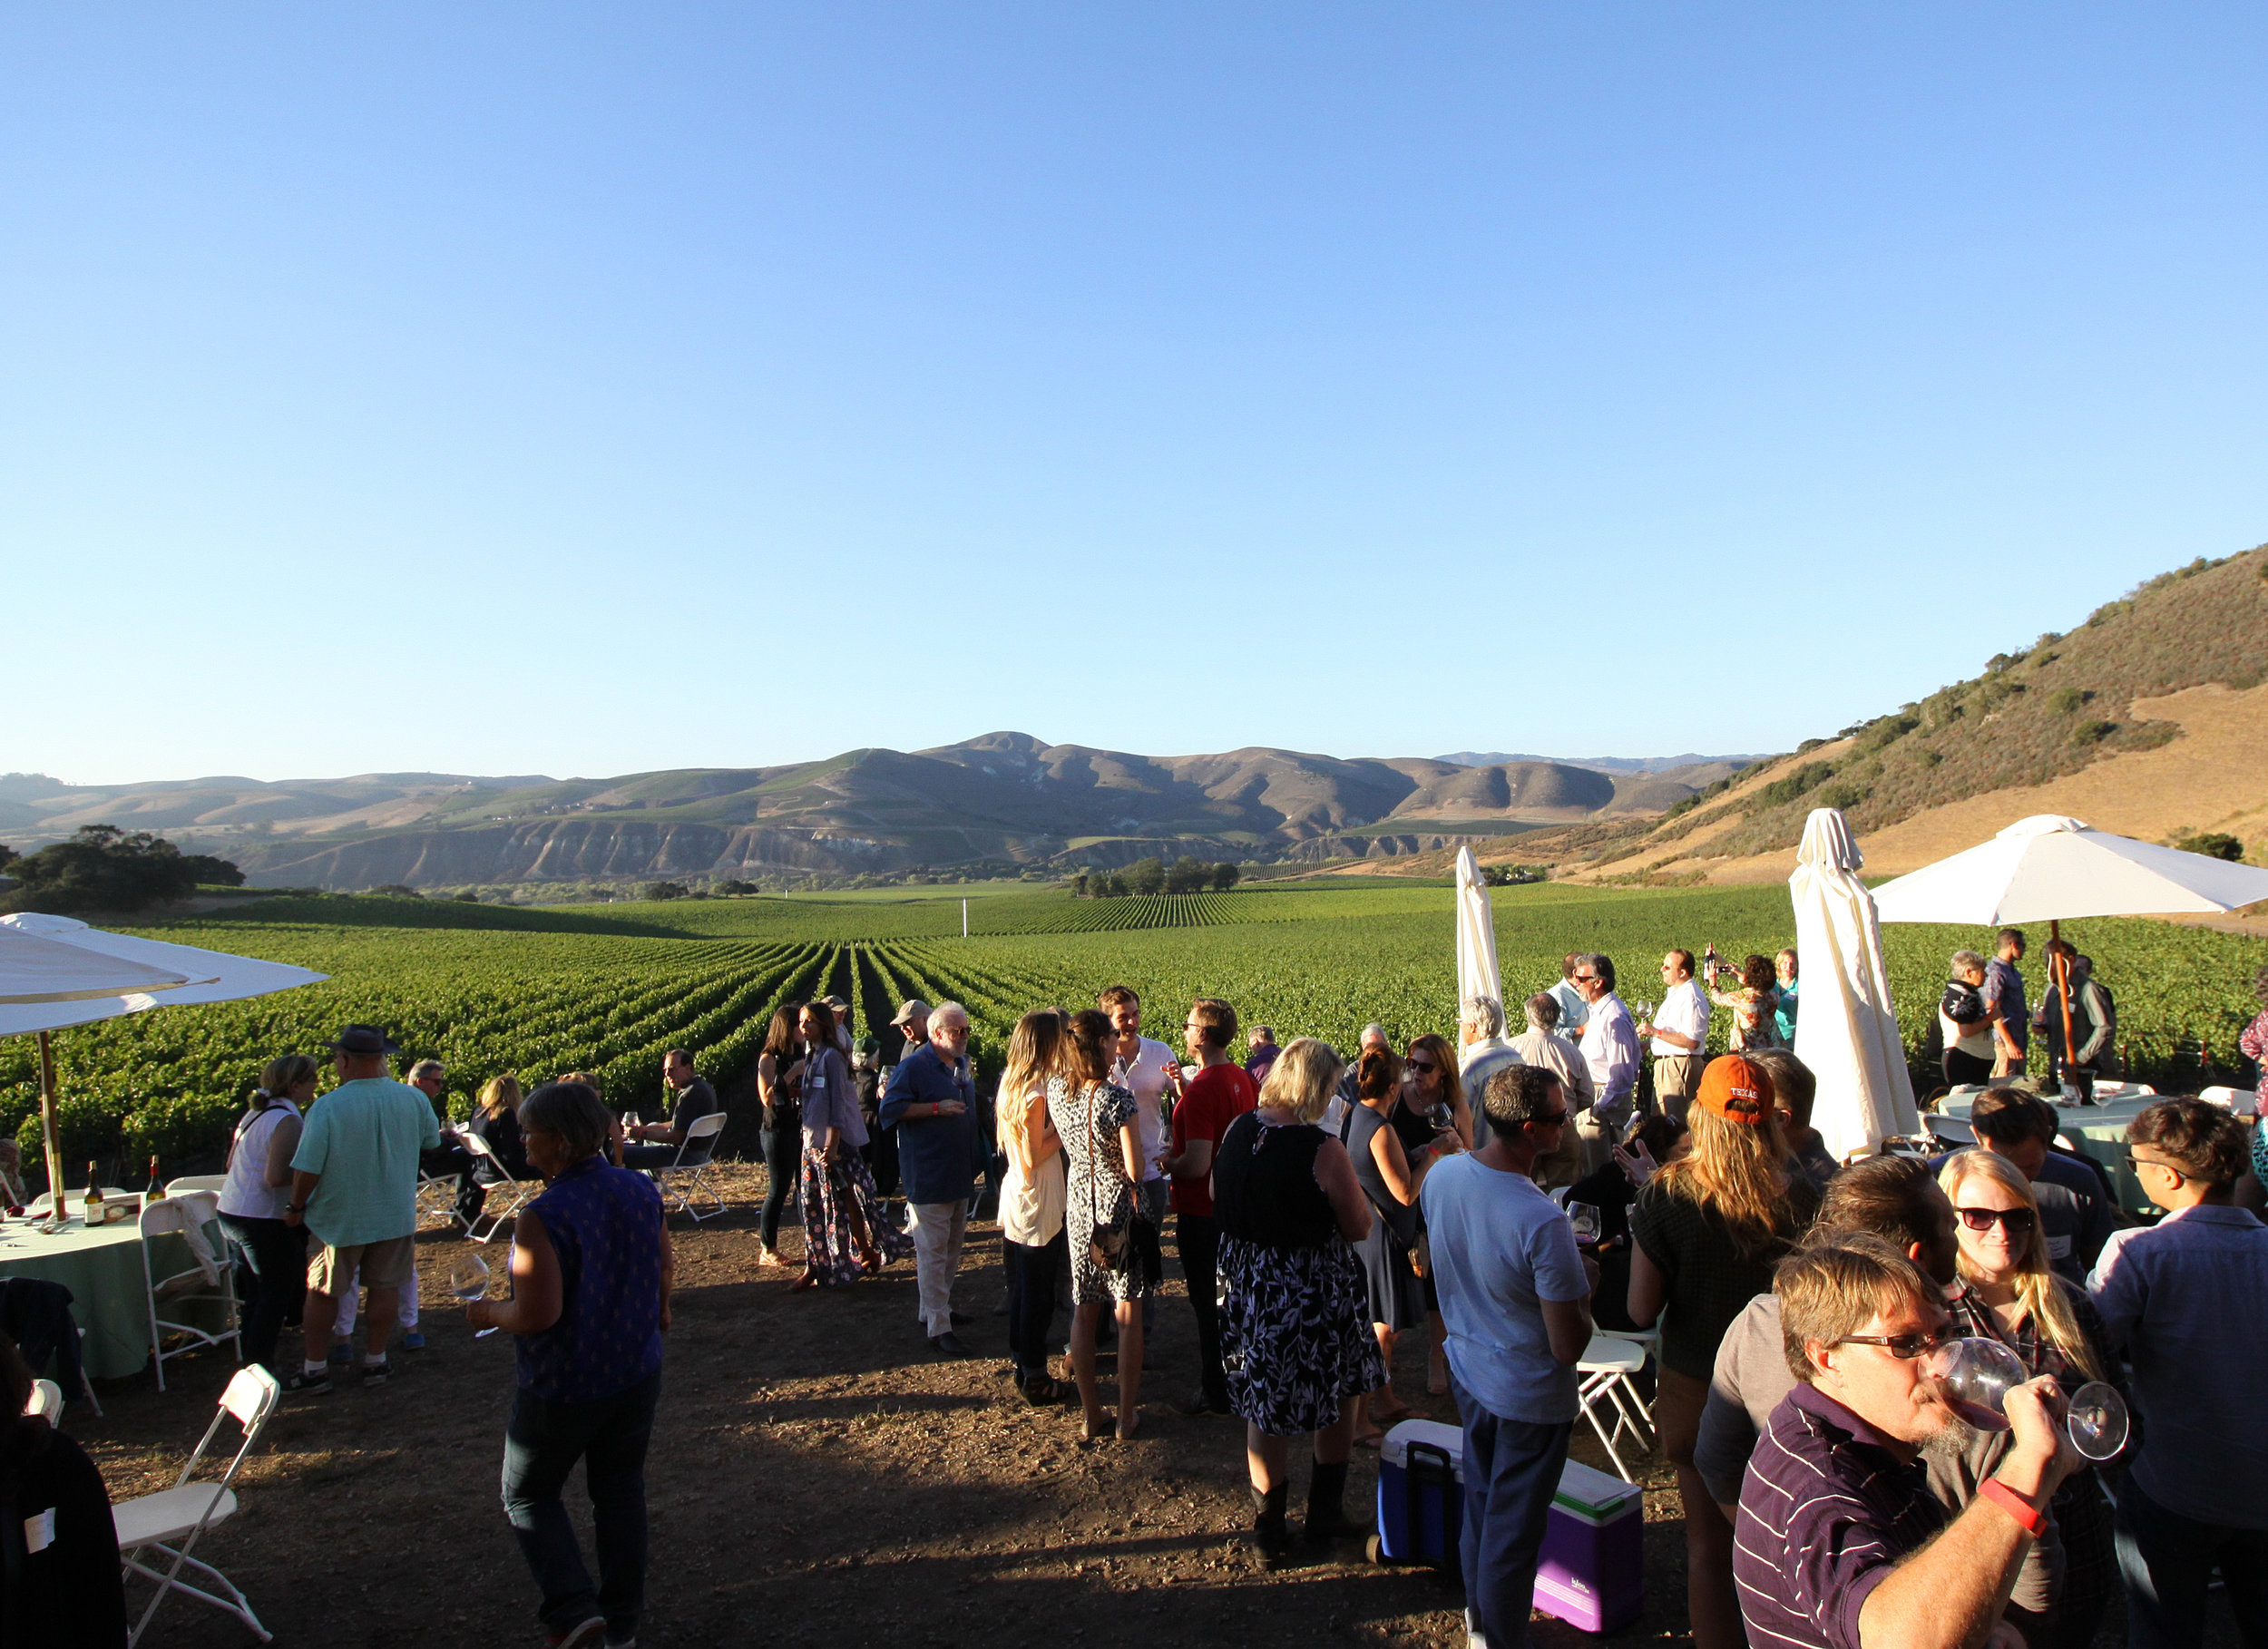 Kimberly Spies Photography/ Guests at the 2014 Wine & Fire Barn Party relish the gorgeous view of the Sta. Rita Hills from the Sanford & Benedict Vineyard historic barn